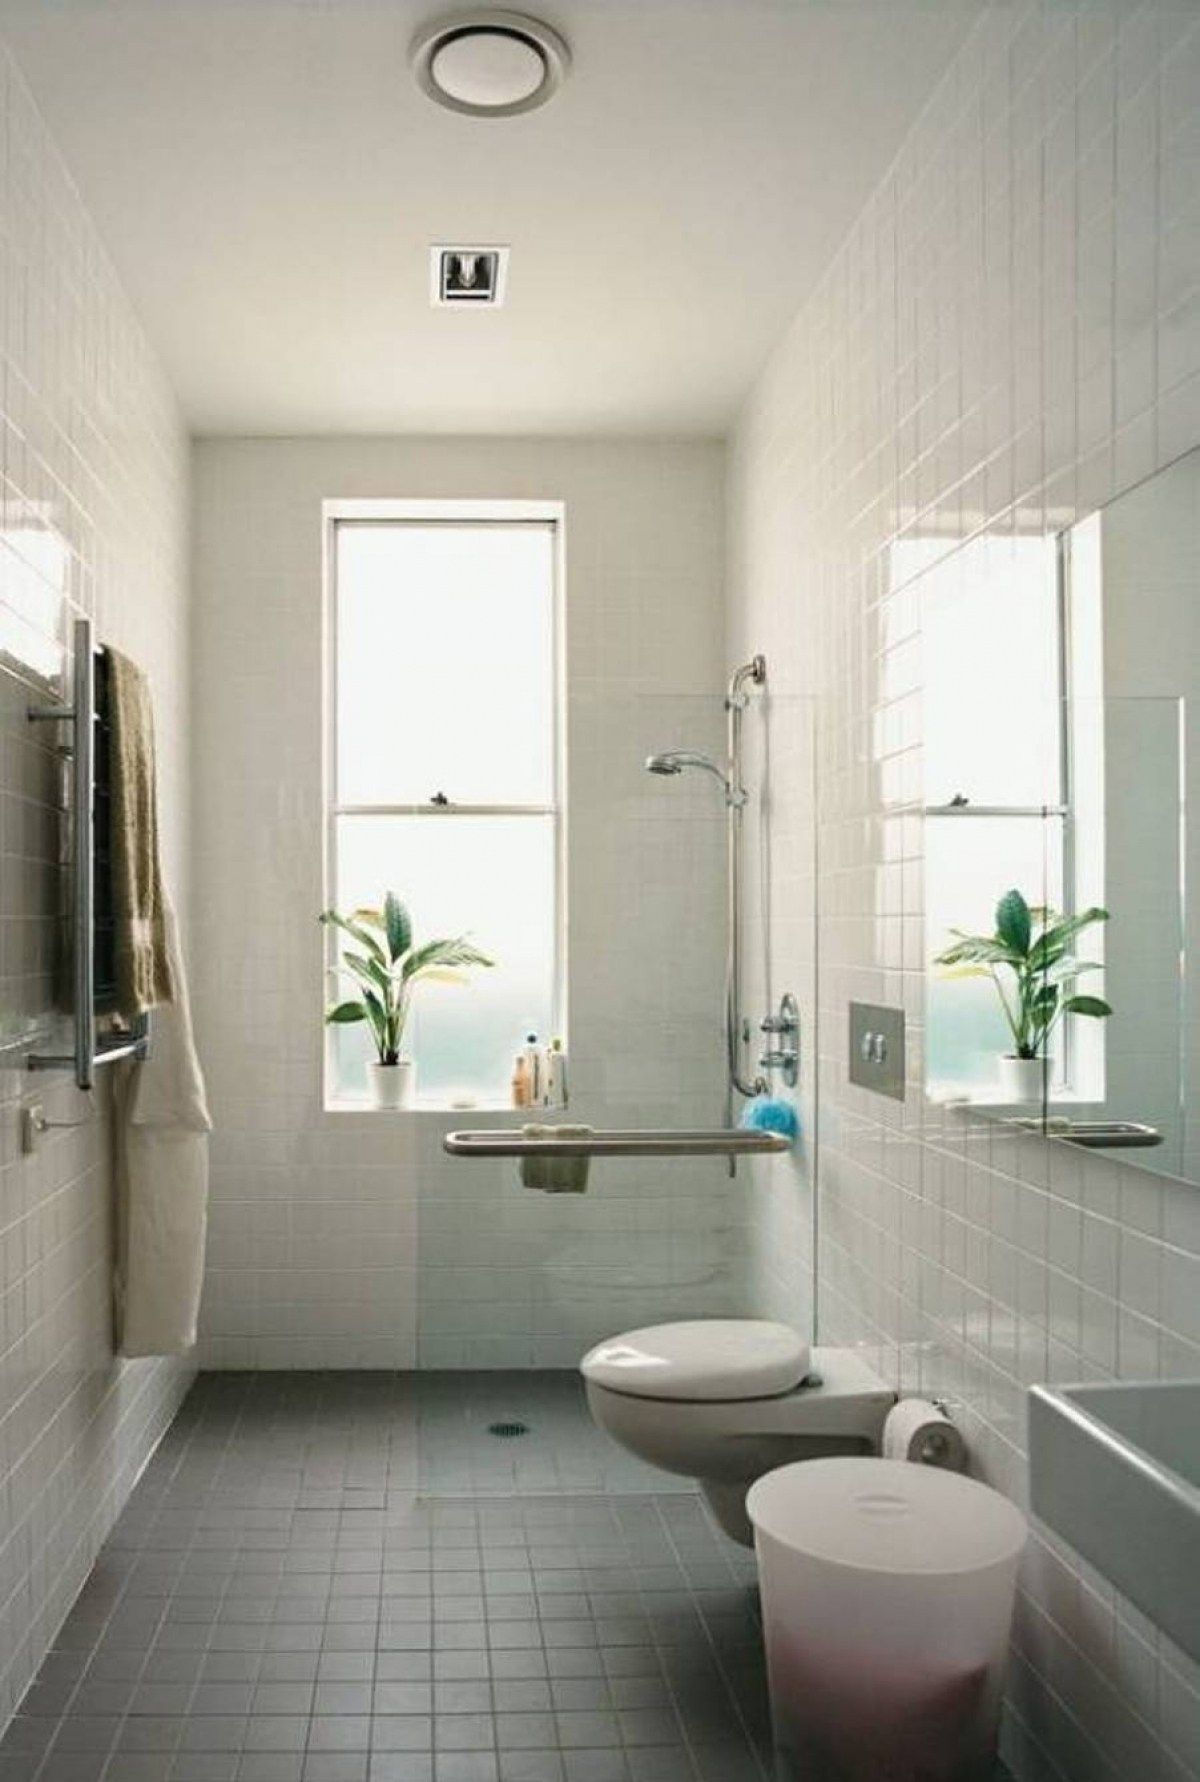 Bathroom small narrow bathroom ideas tub shower popular Bathroom design no window